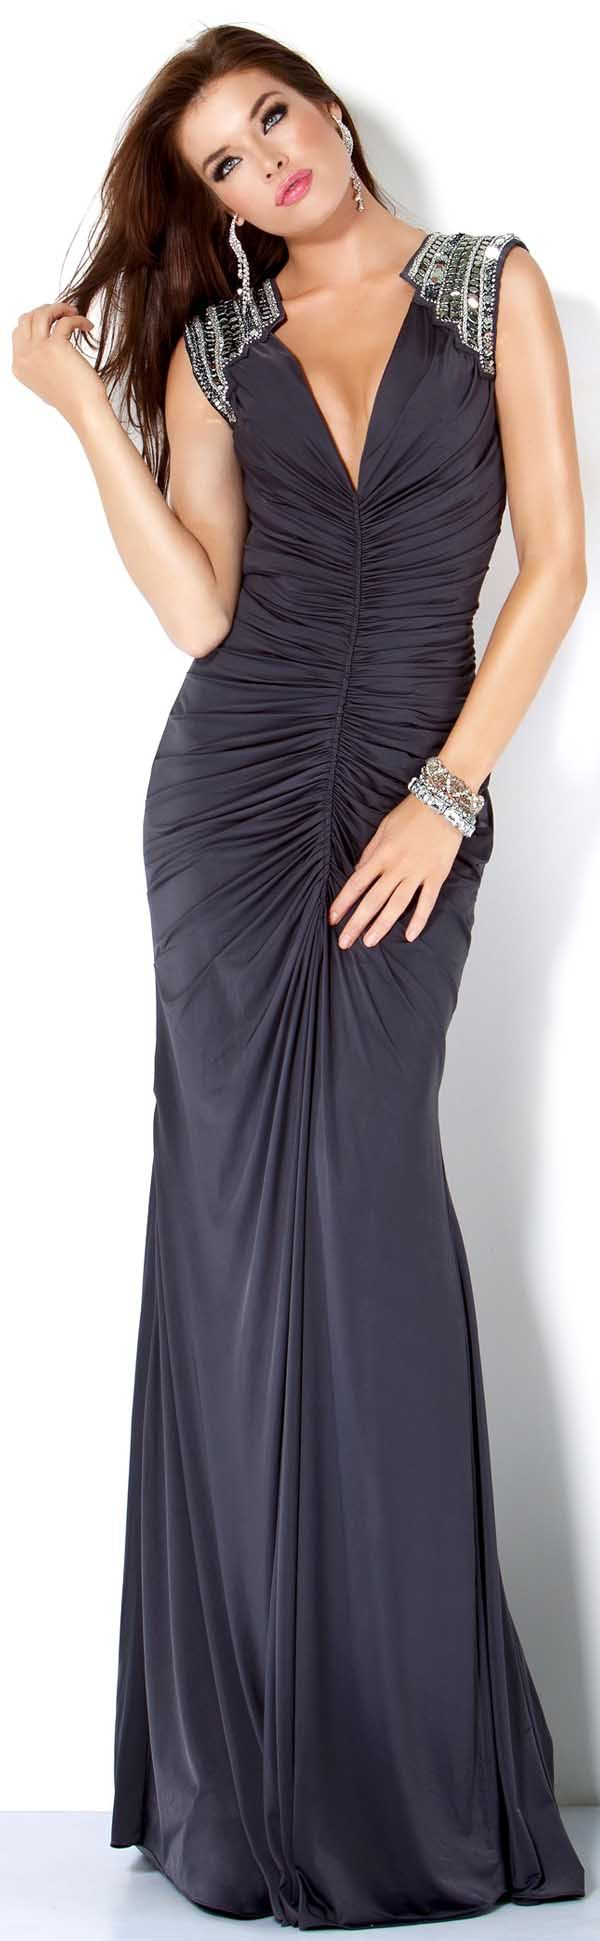 JOVANI - Authentic Designer Dress